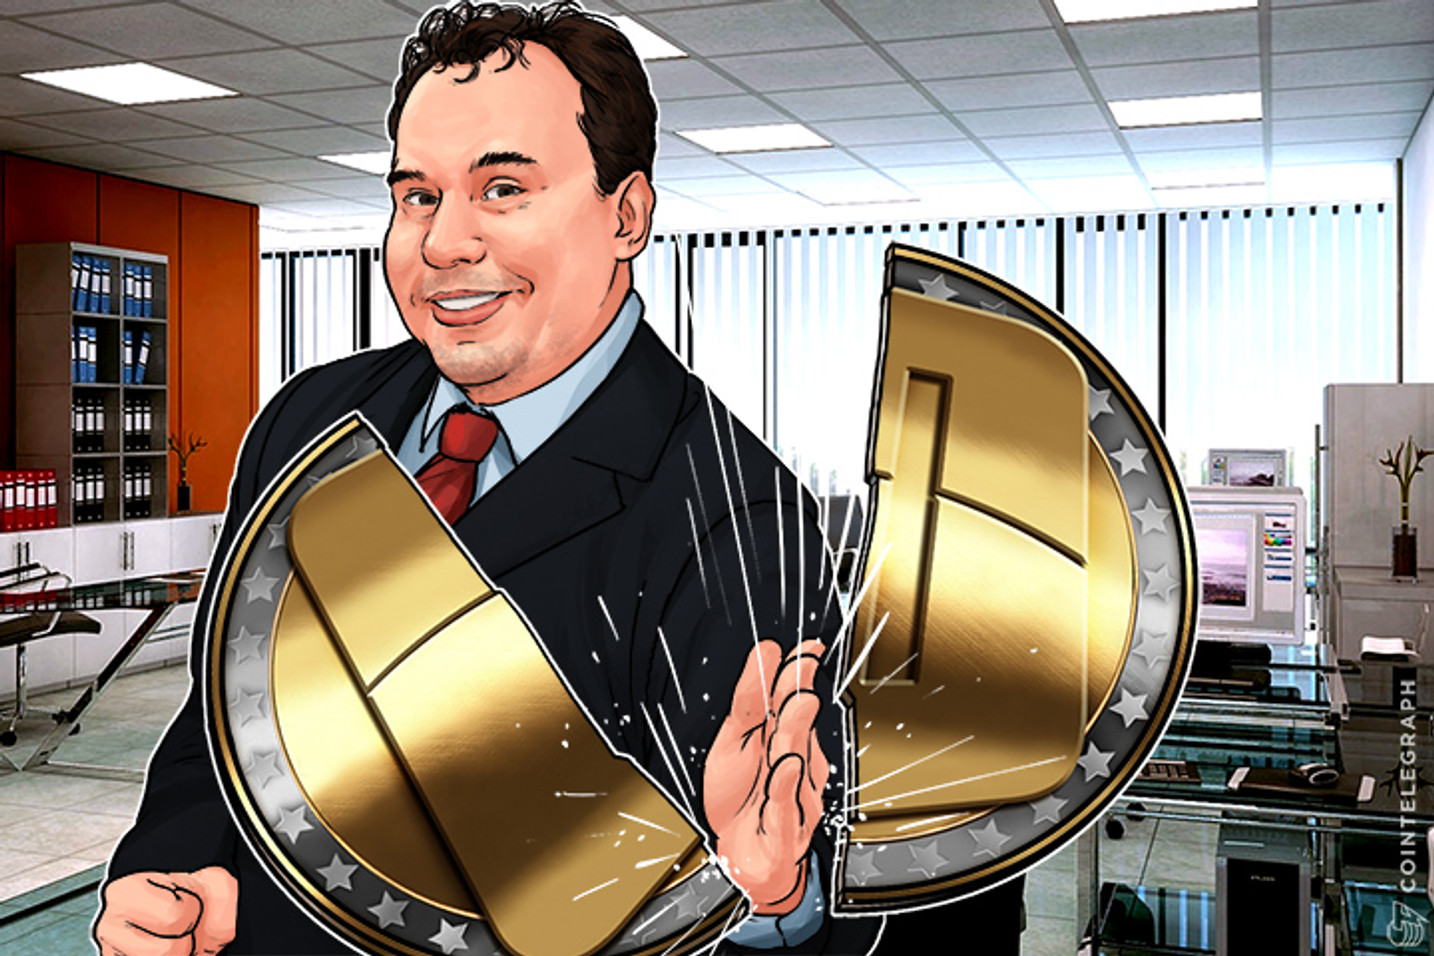 Bruce Fenton: Onecoin Has No Value, When It Collapses, Regulators Will Blame All Cryptocurrencies